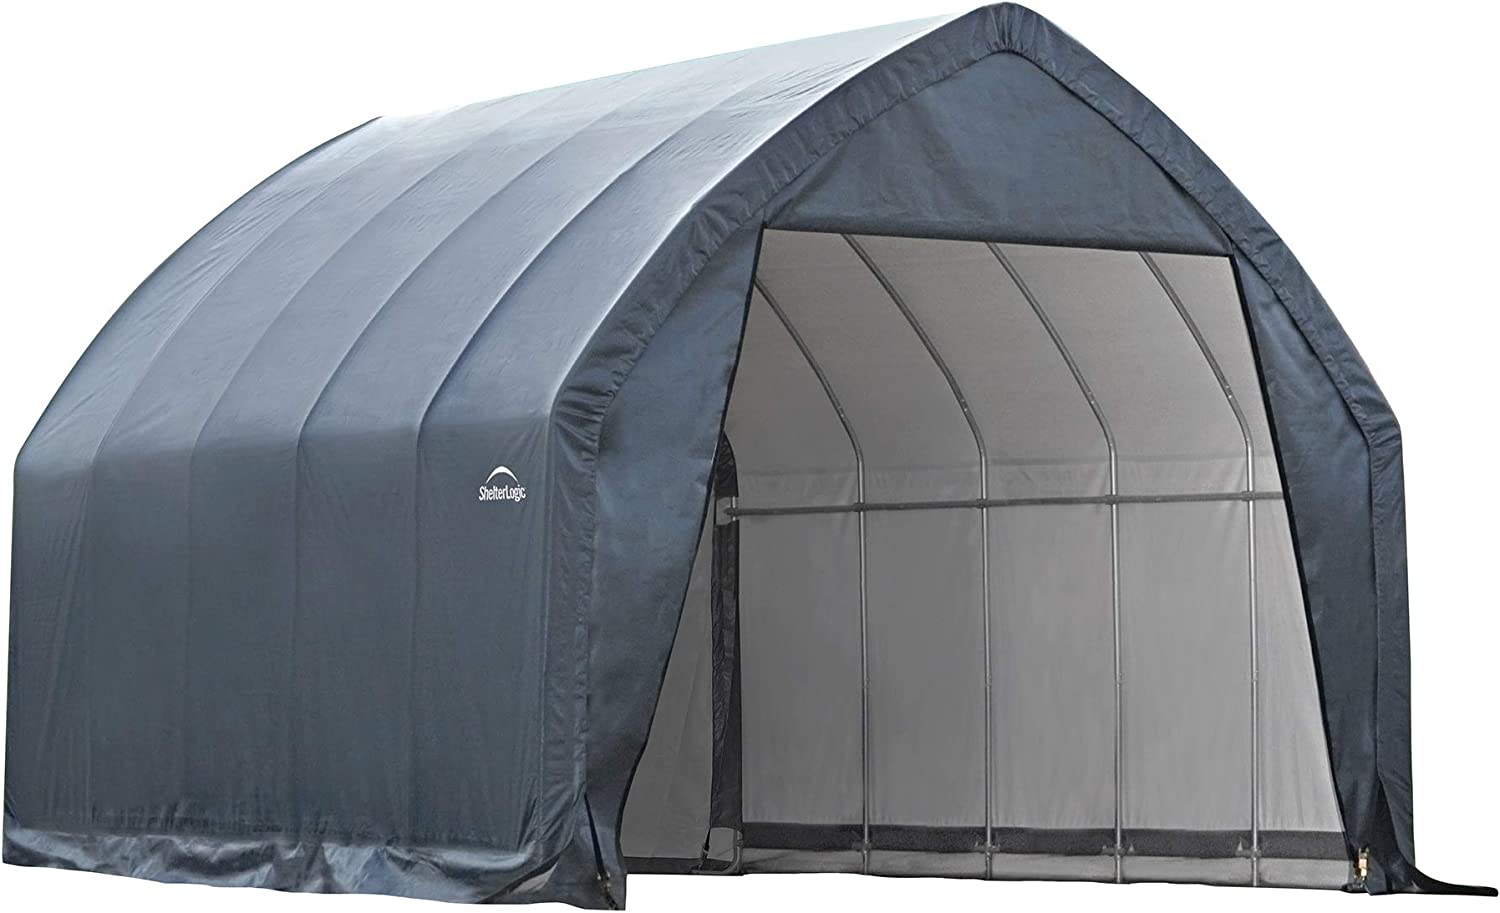 B003AQNKDU ShelterLogic Garage-in-a-Box SUV/Truck Shelter, Grey, 13 x 20 x 12 ft. 71yD9NpdbML.SL1500_